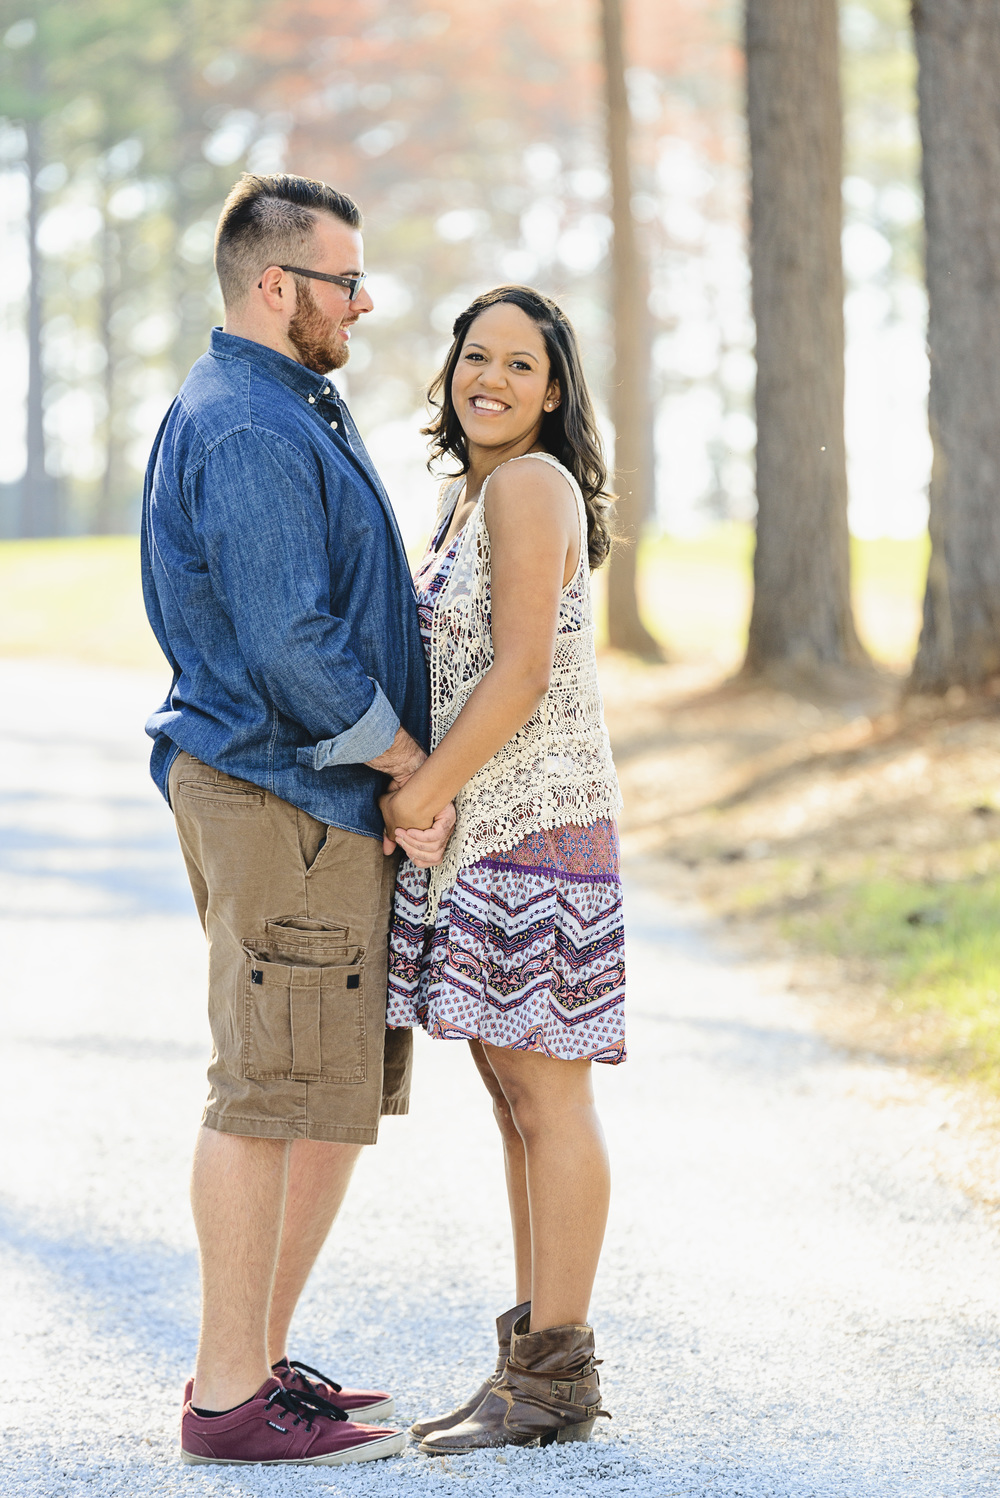 cabin_mountains_romantic_field_engagement_session_lynchburg_va002.jpg